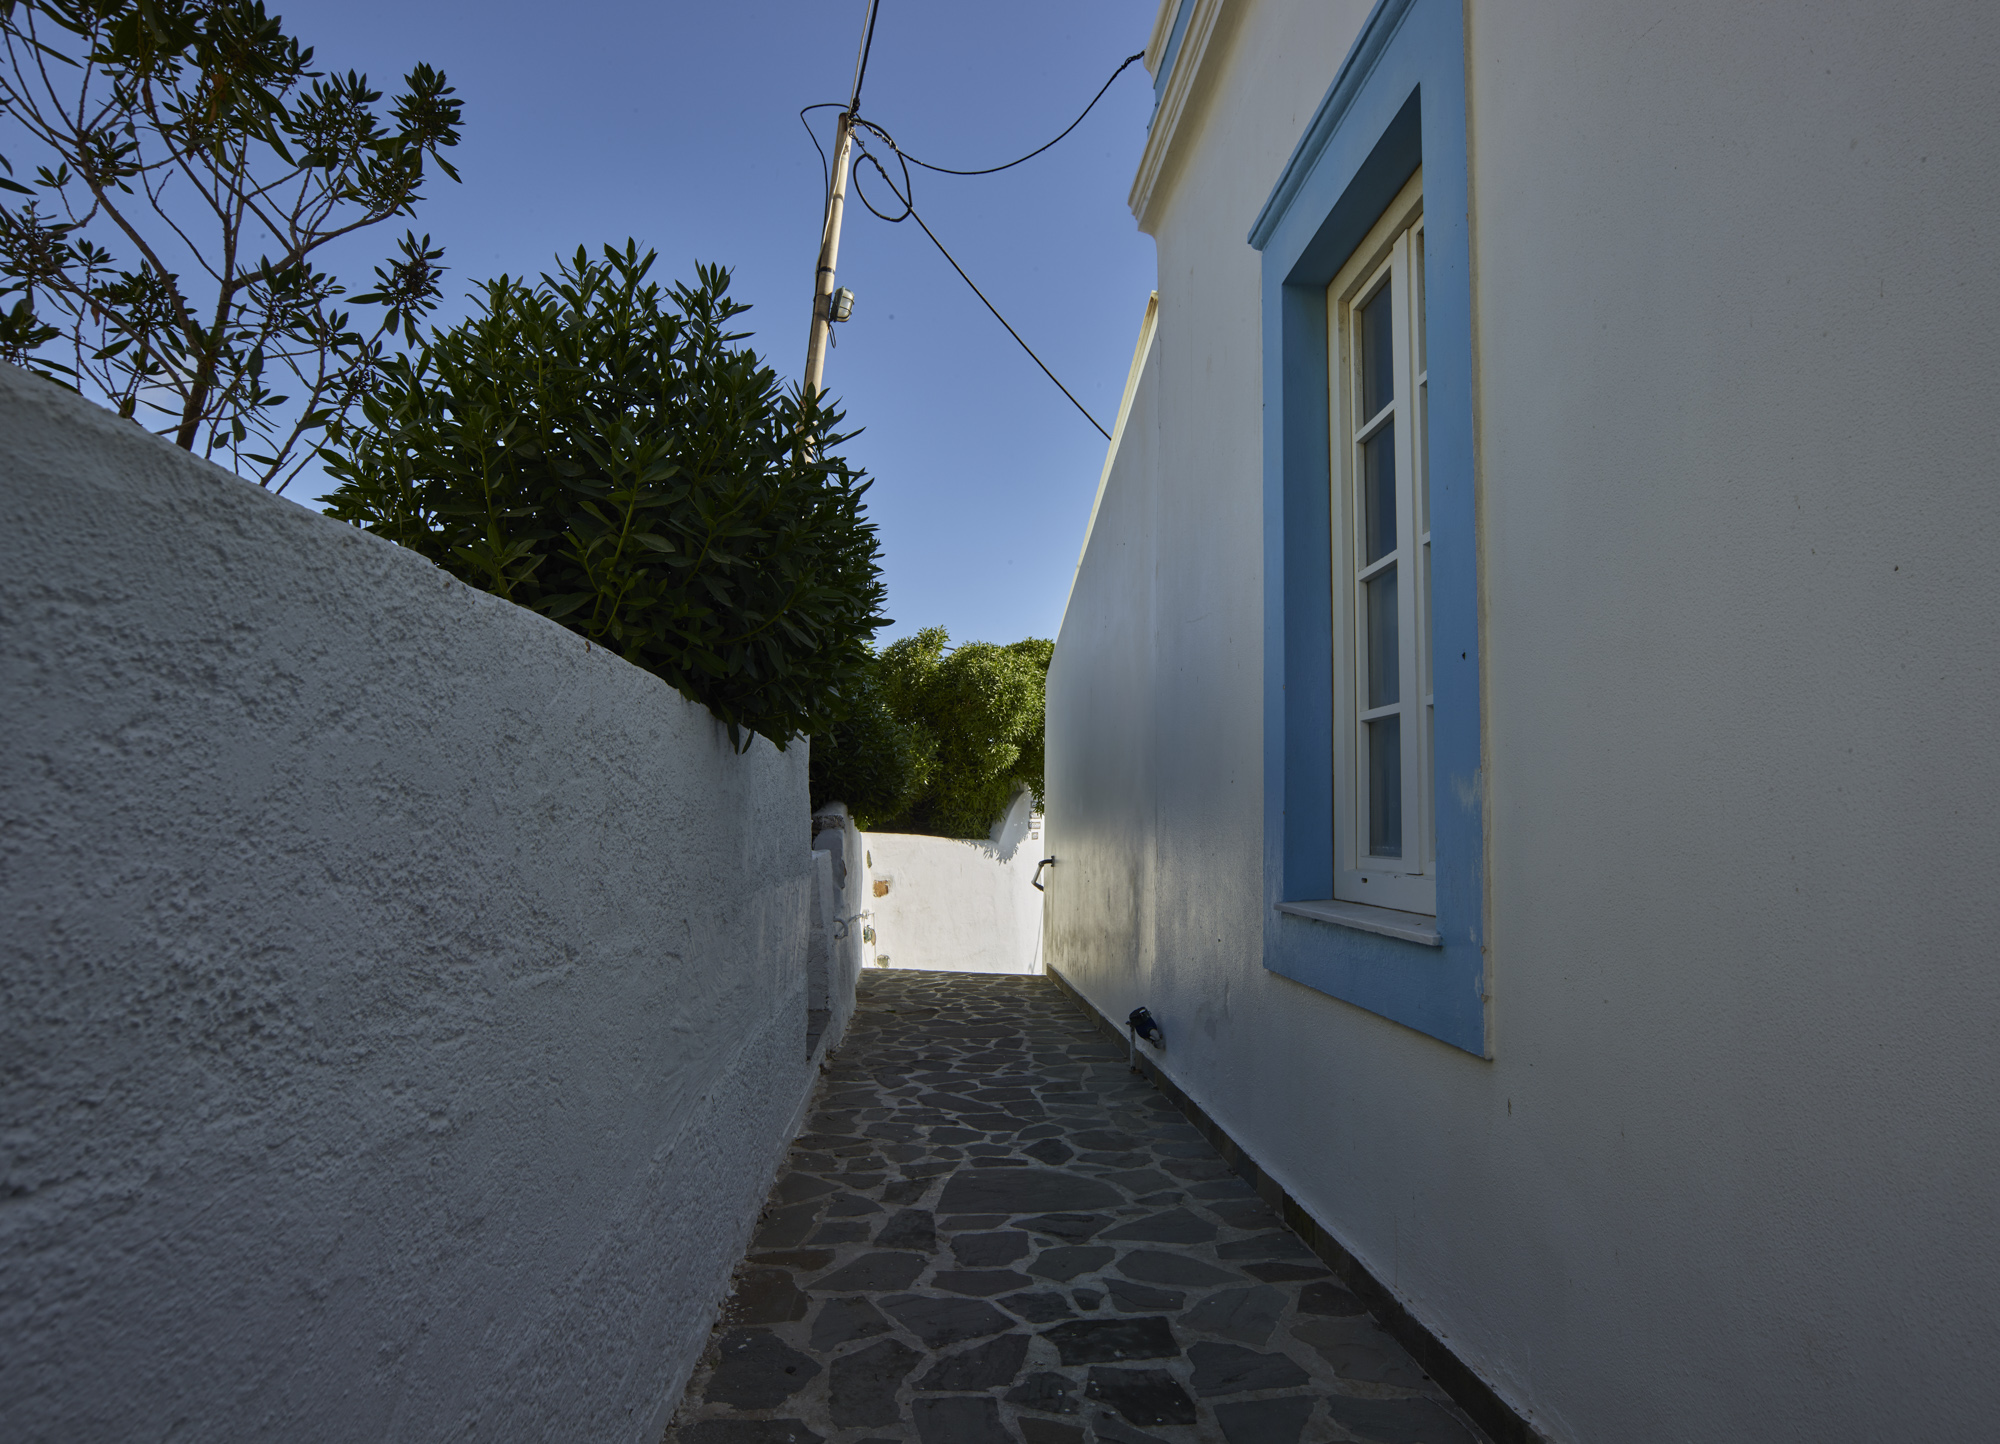 Alley - Agia Marina, Leros, May 2017